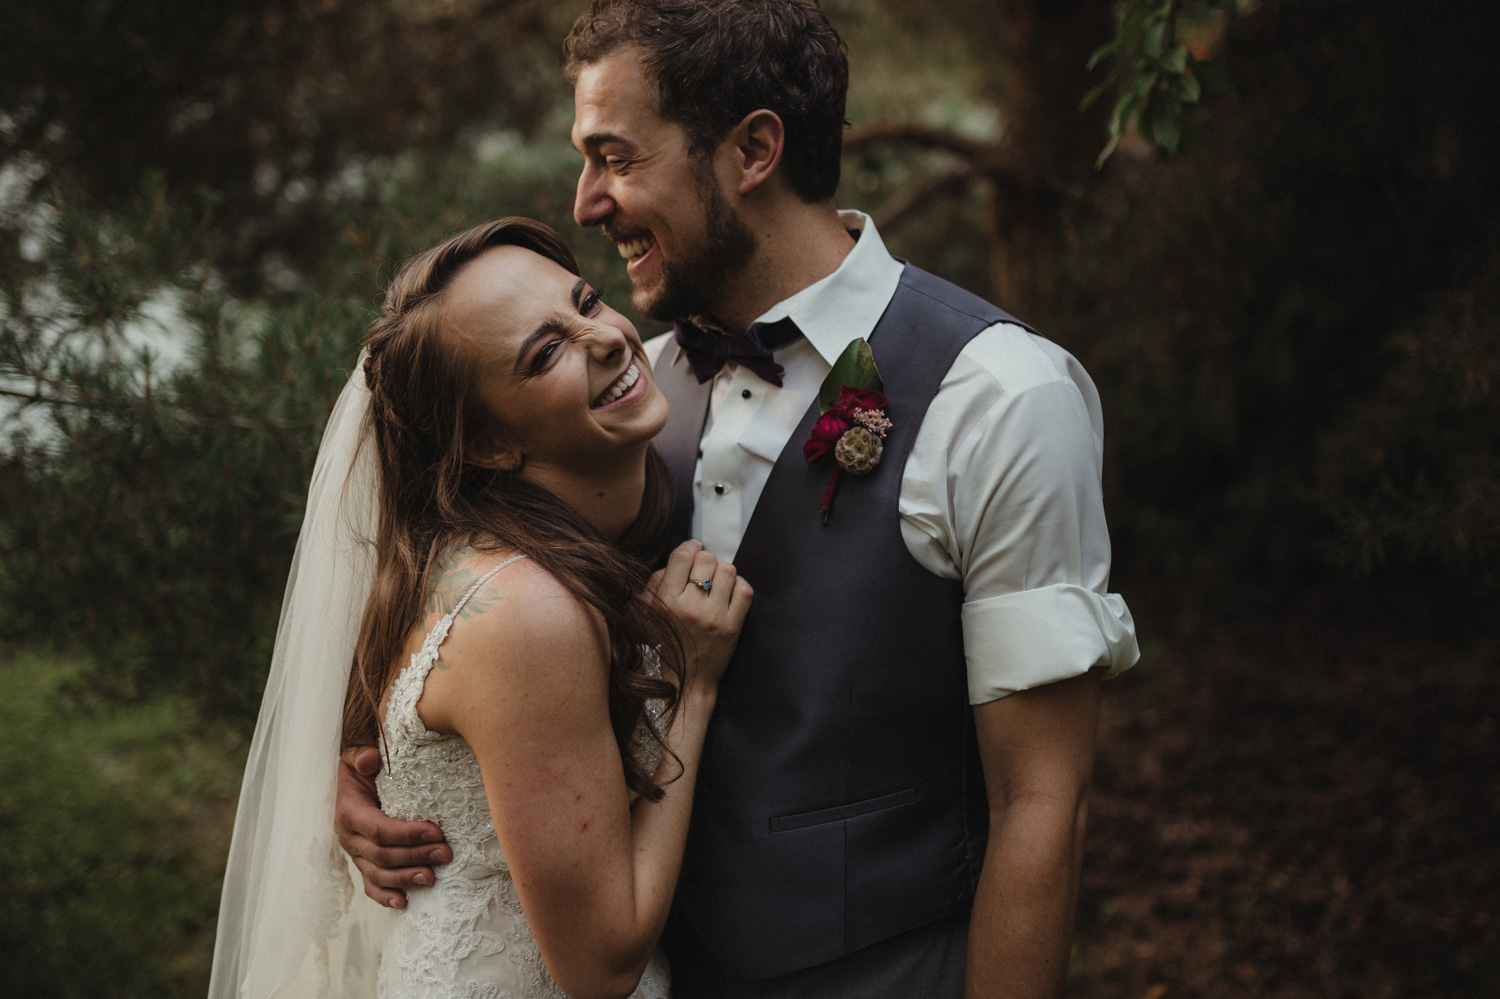 San Rafael wedding couples laughing photo